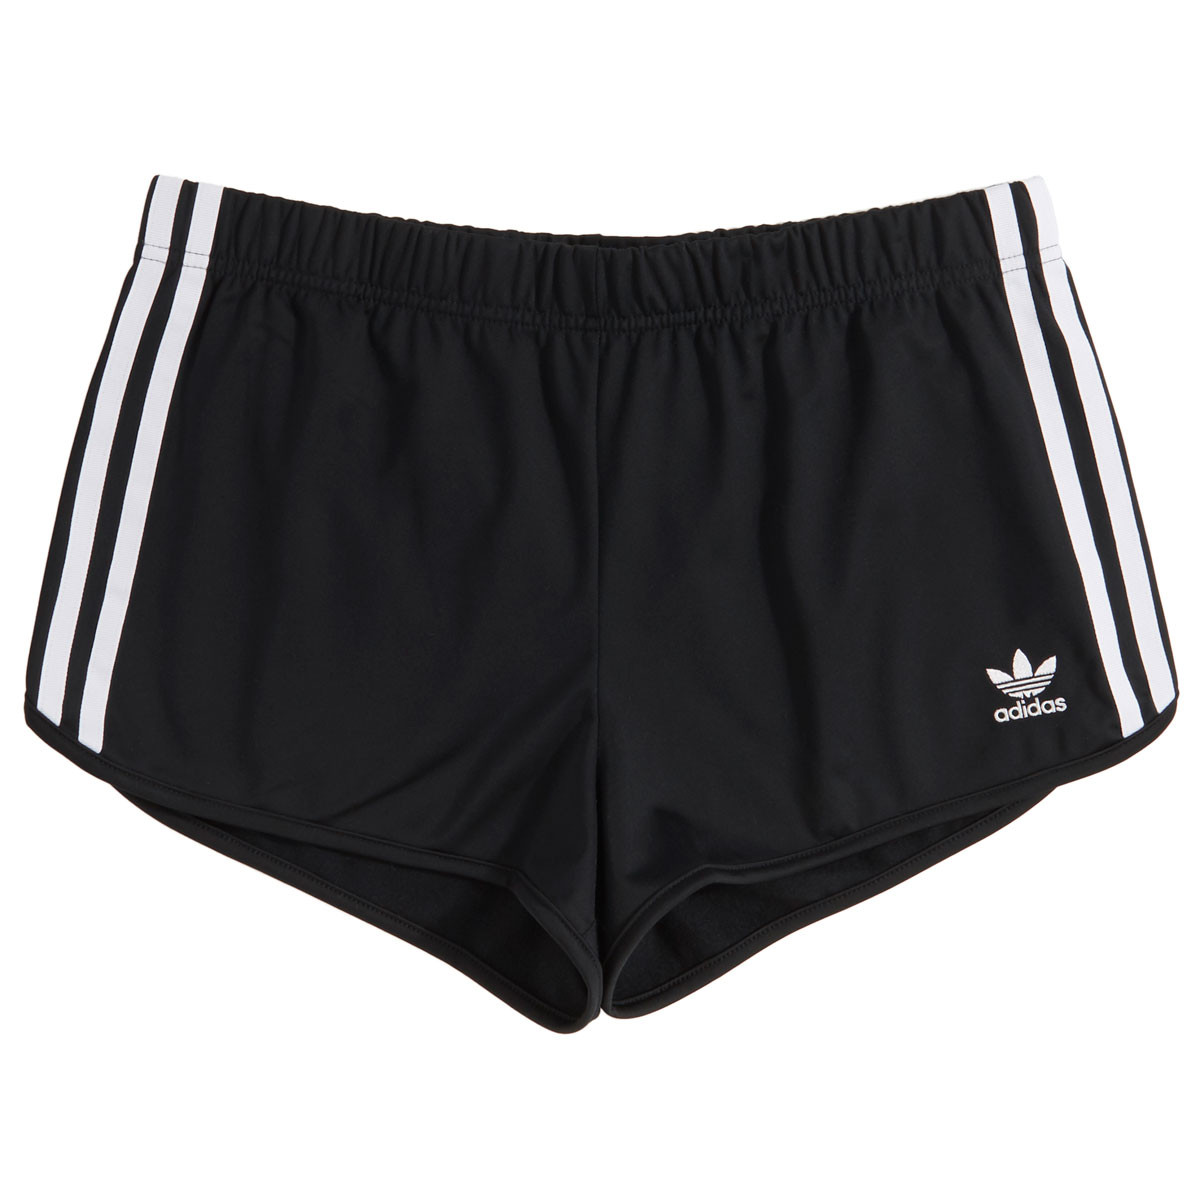 Adidas Womens 3 Stripe Shorts Black